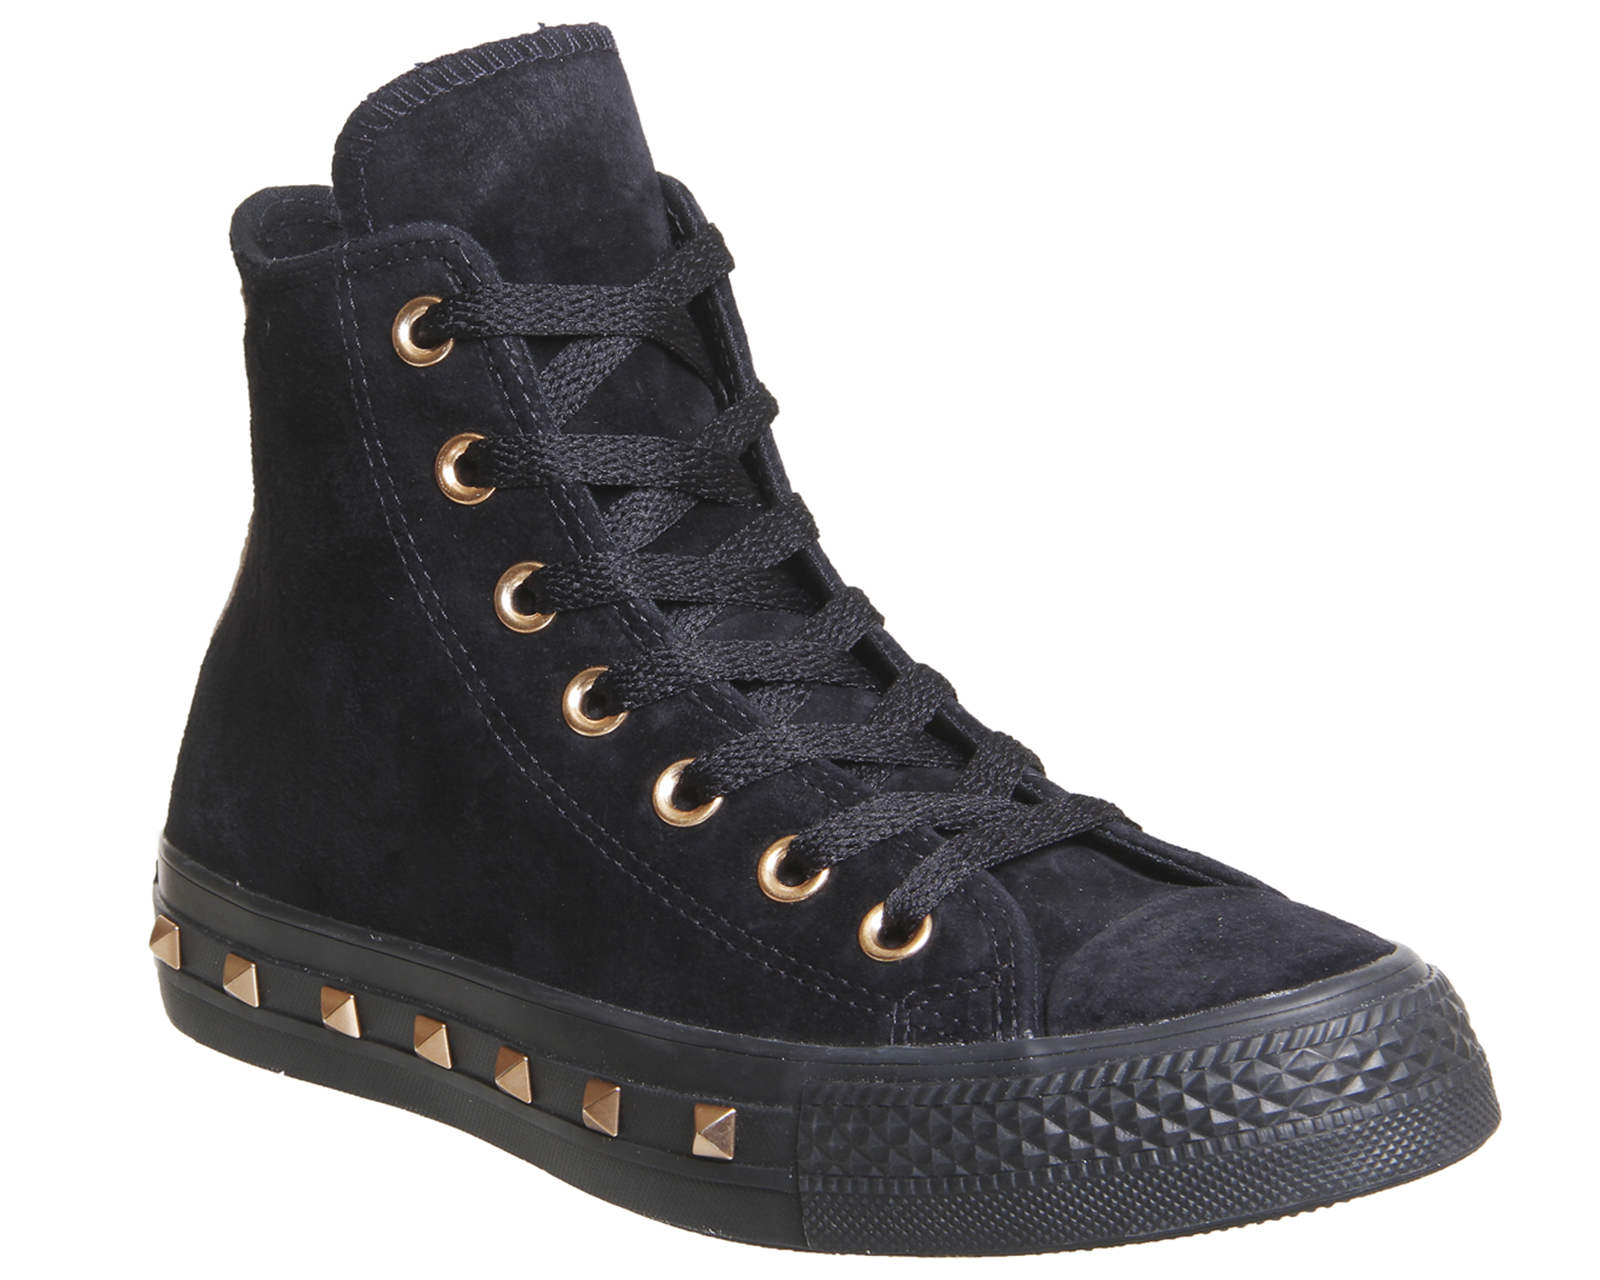 fe3a39ac237414 Sentinel Womens Converse All Star Hi Leather STUD BLACK PARTICLE BEIGE  BLUSH Trainers Sh